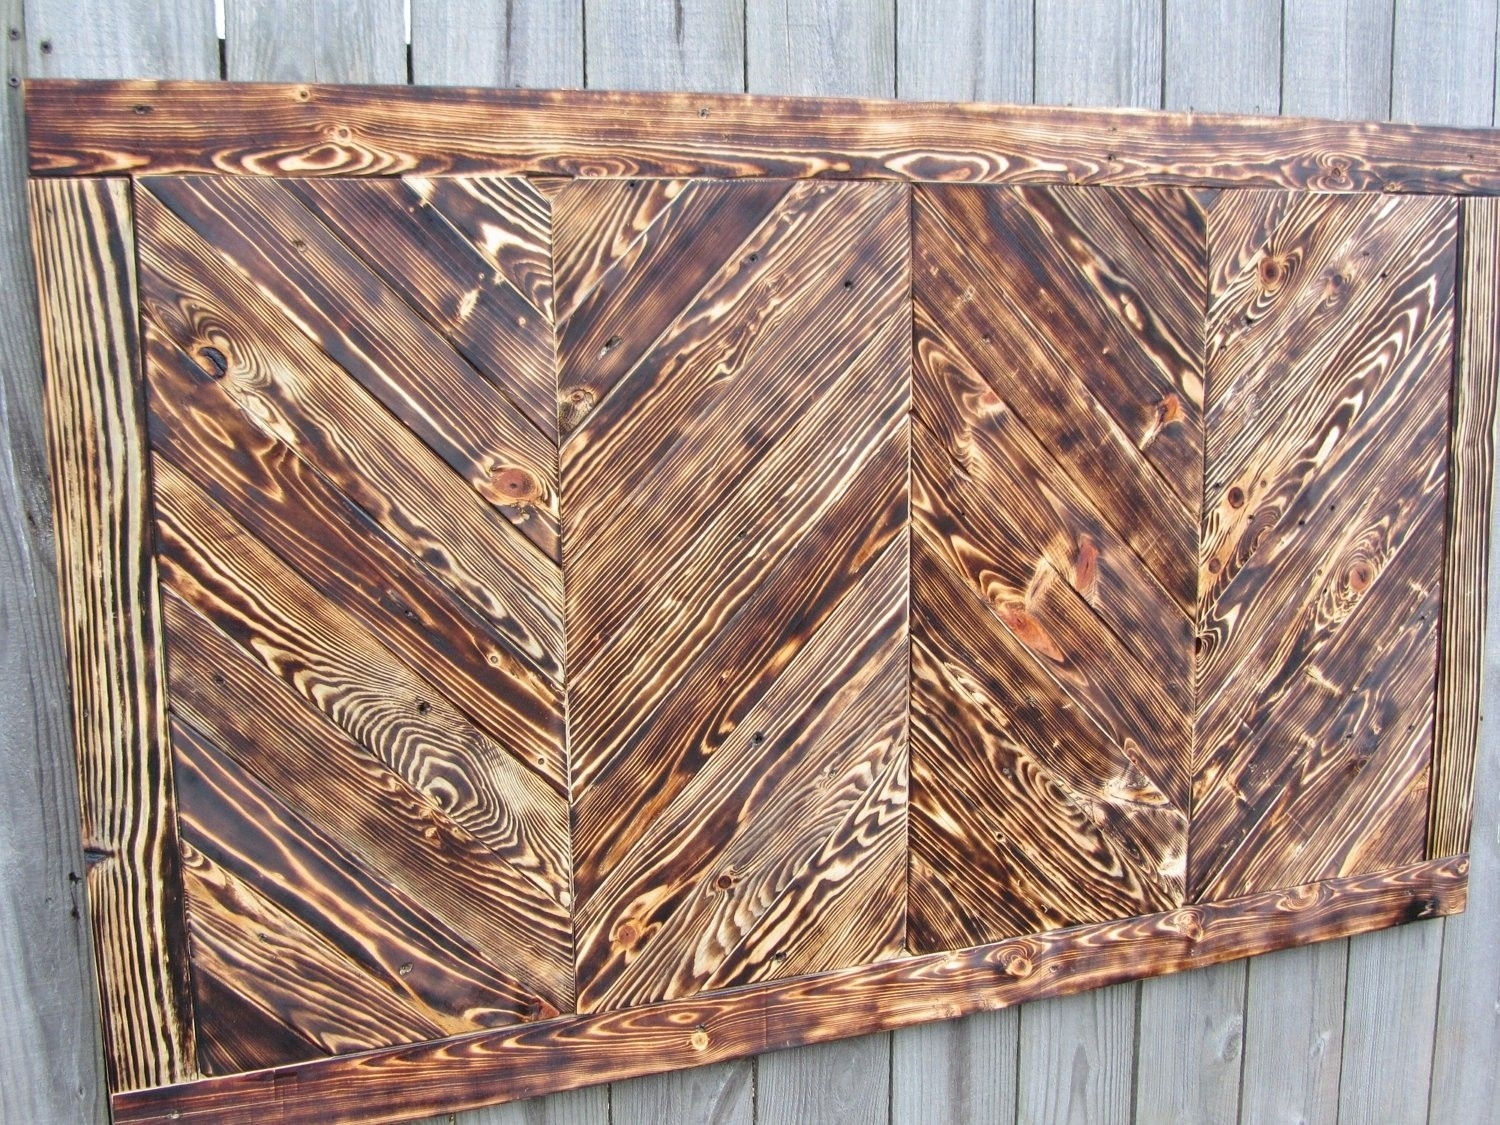 Hand Crafted Chevron Wood Wall Art Made From Reclaimed Pallet Wood With 2017 Personalized Wood Wall Art (View 7 of 20)